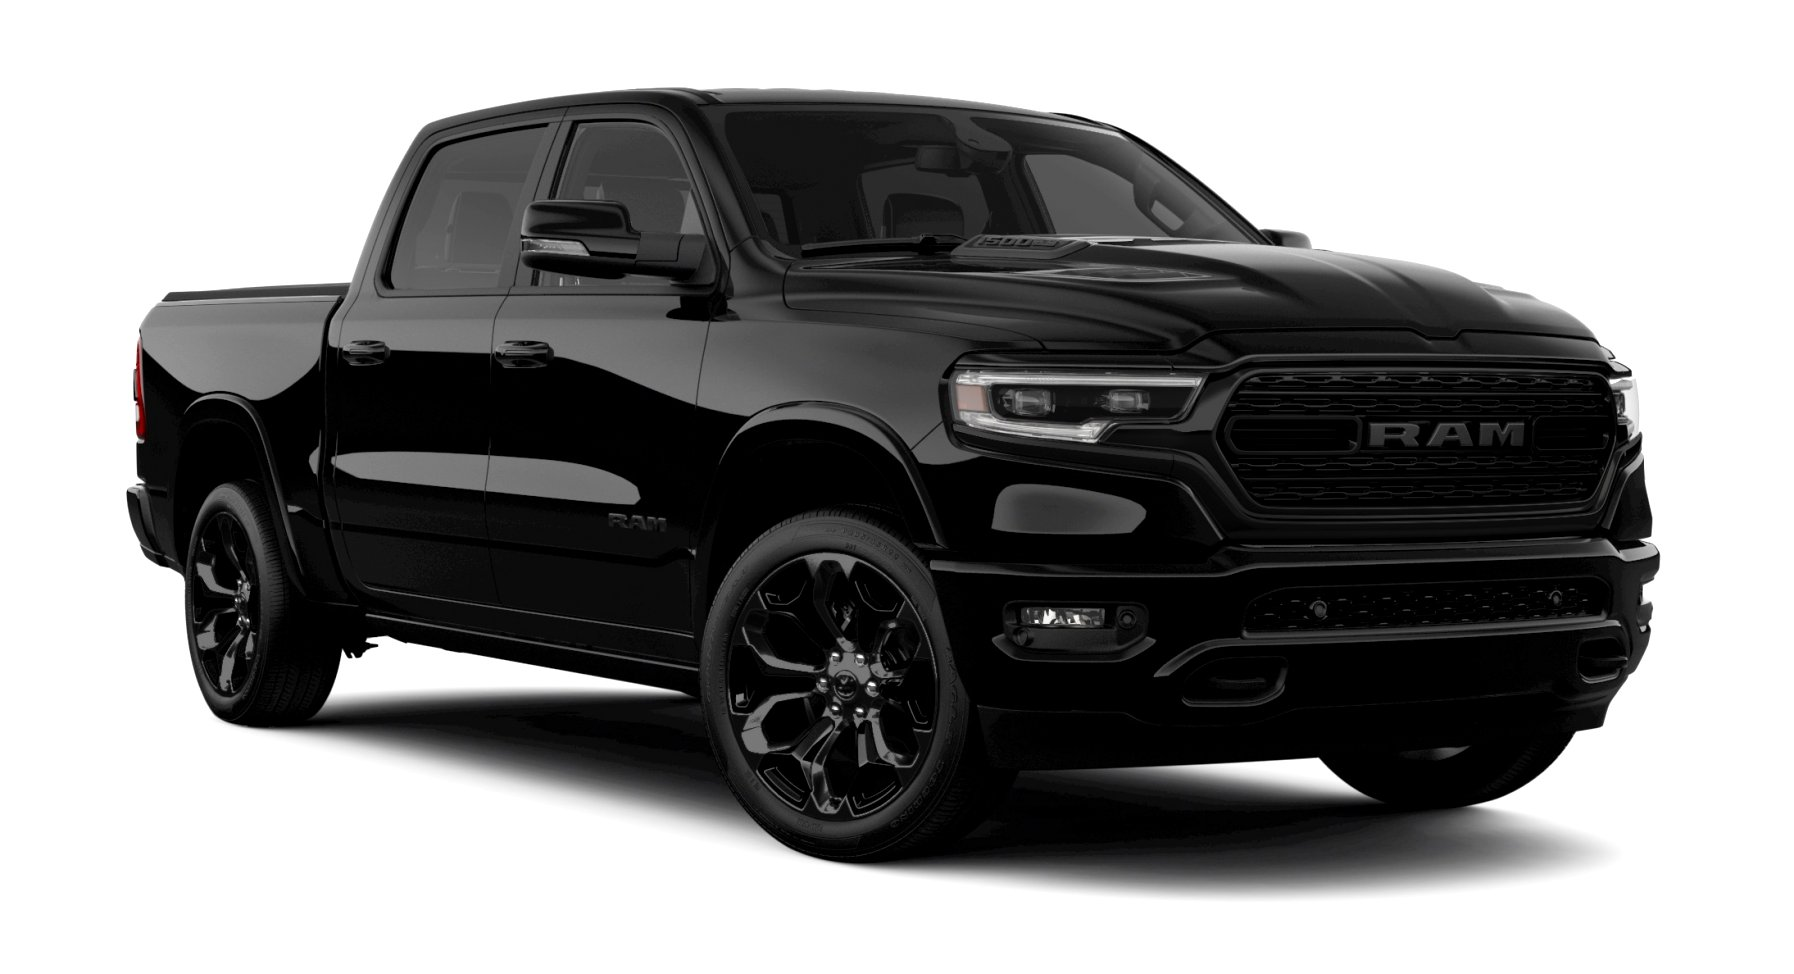 2020 dodge limited Price, Design and Review